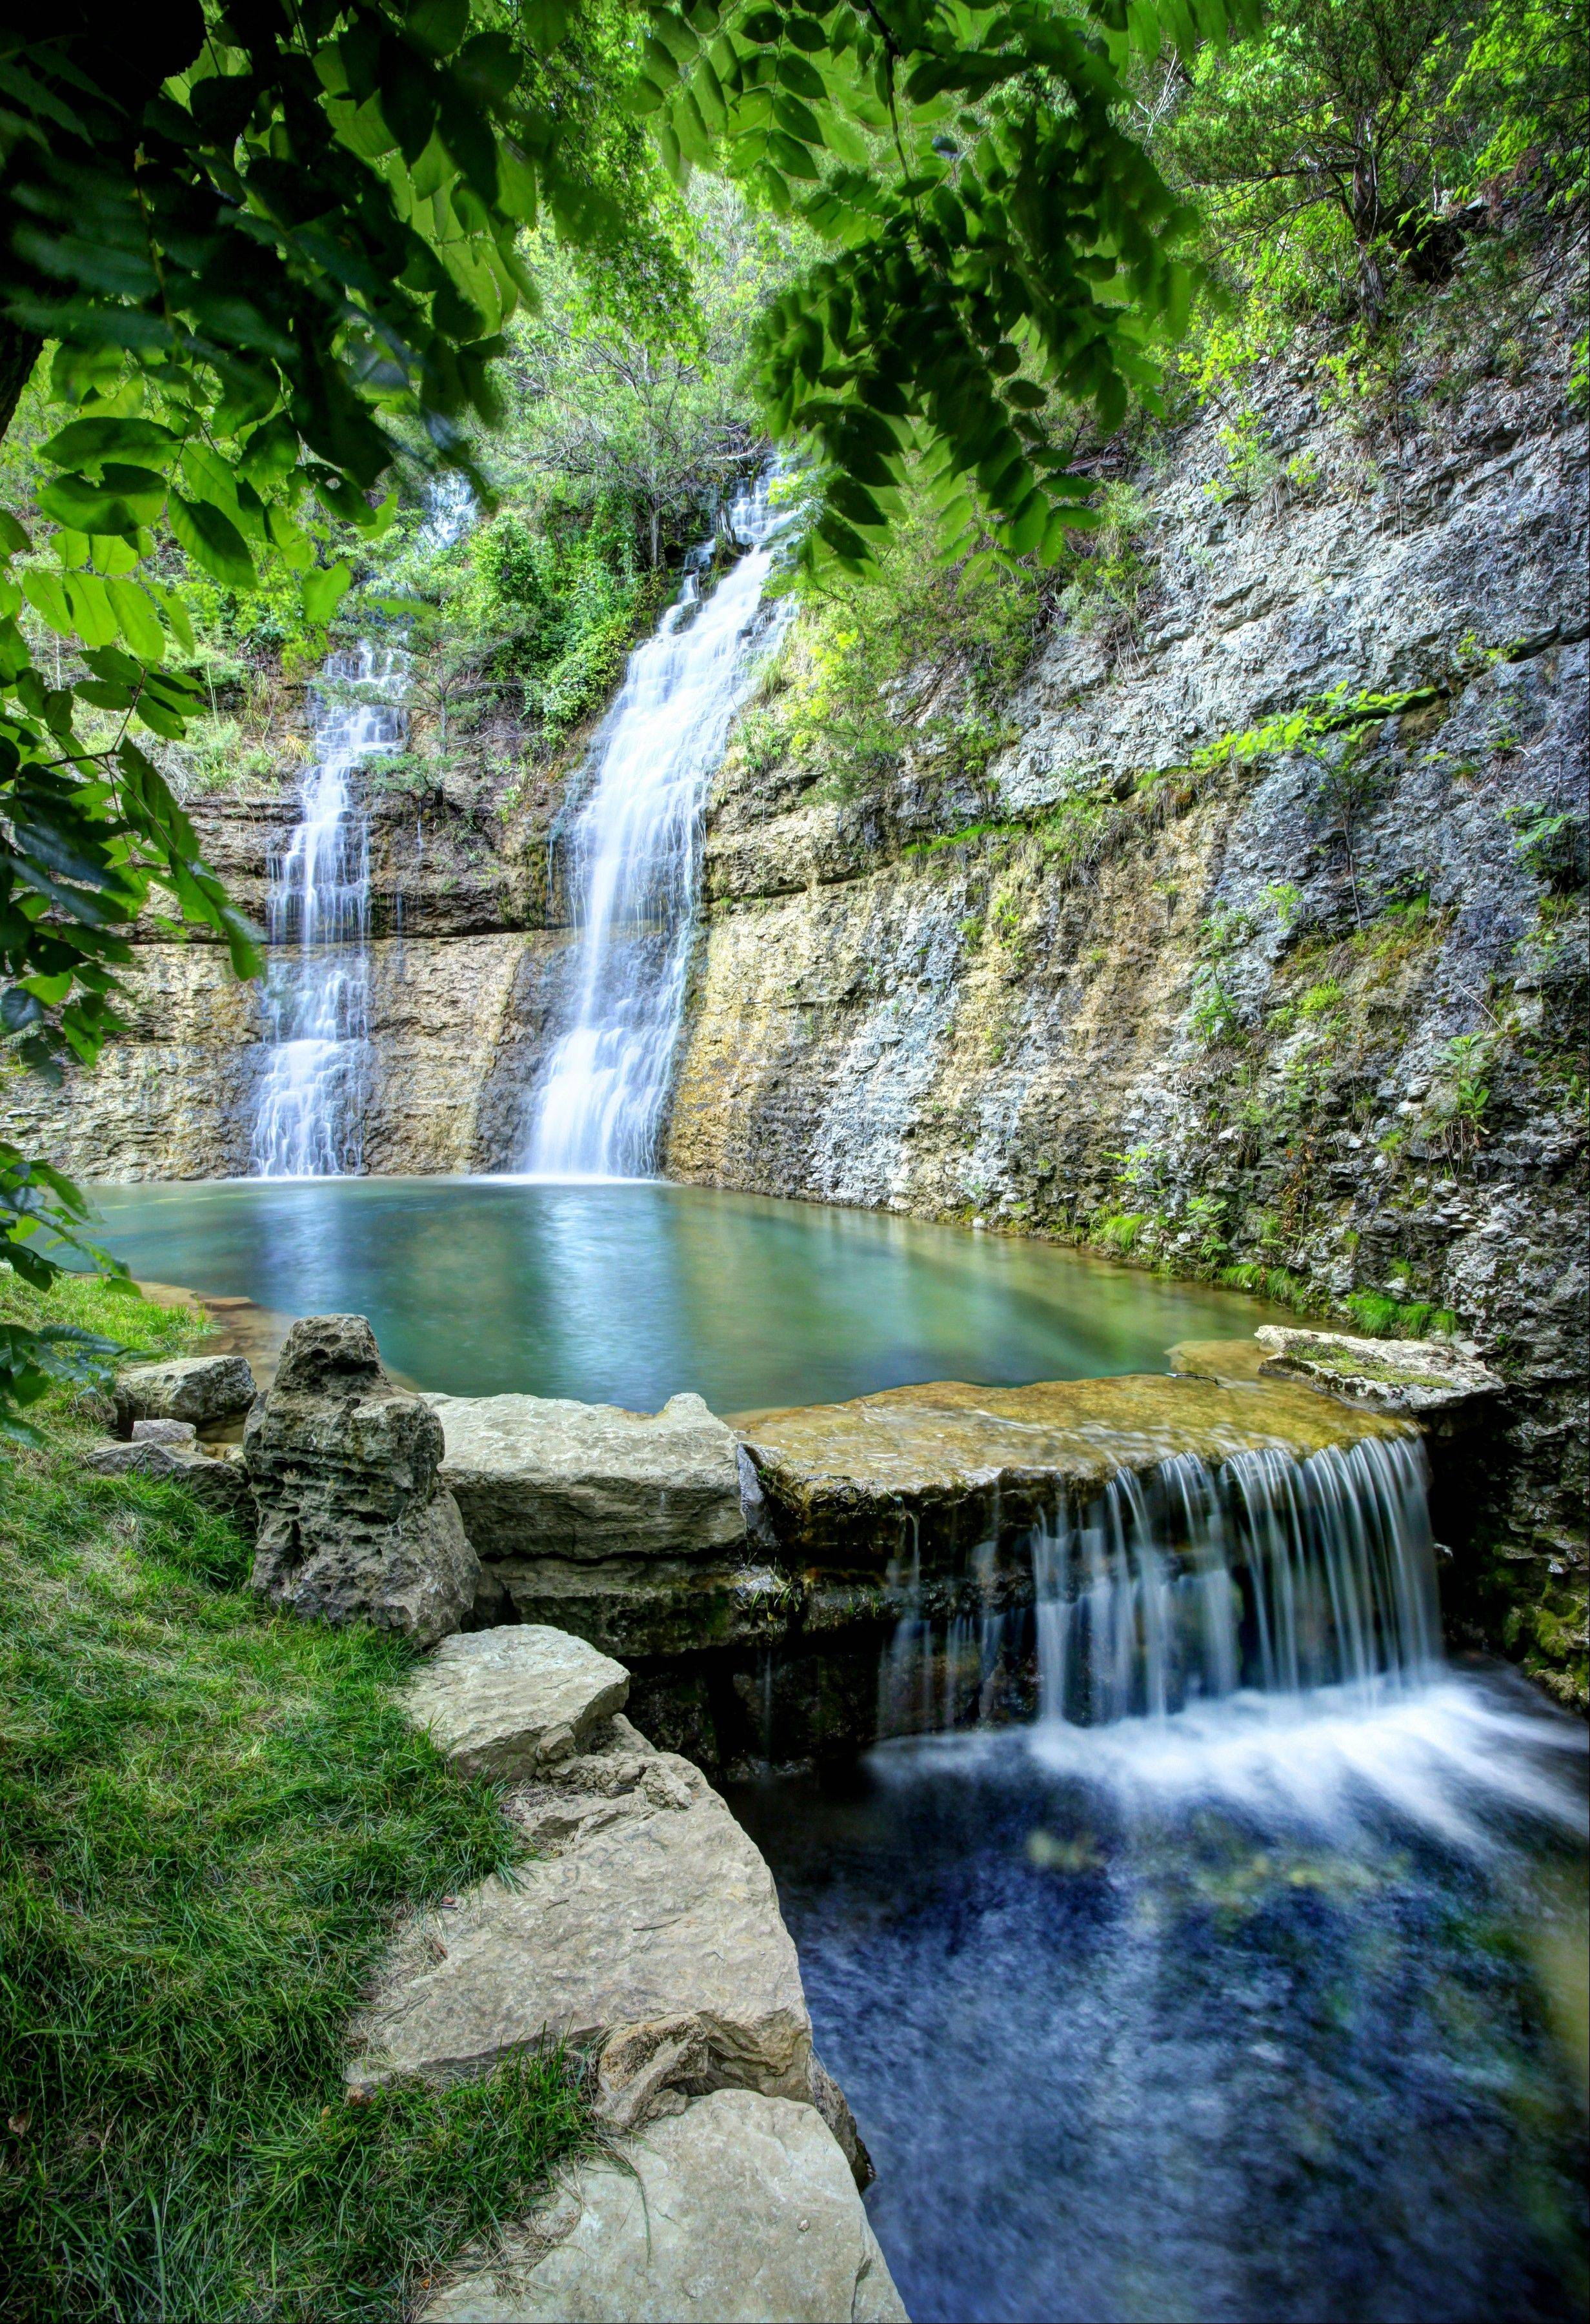 Waterfalls and rock bluffs make Dogwood Canyon a soothing back-to-nature retreat near Branson, Mo.